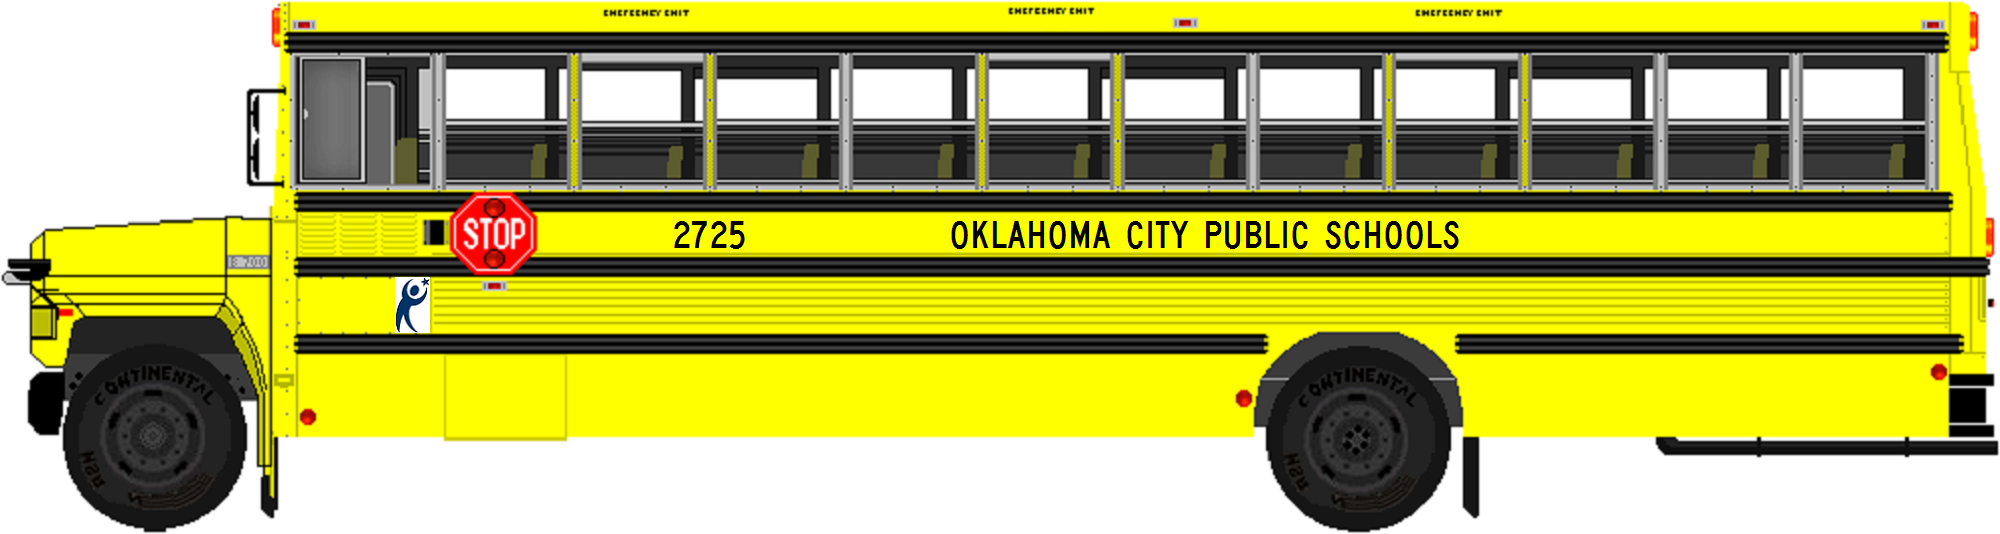 File Oklahoma City Public Schools Bus Png Wikimedia Commons